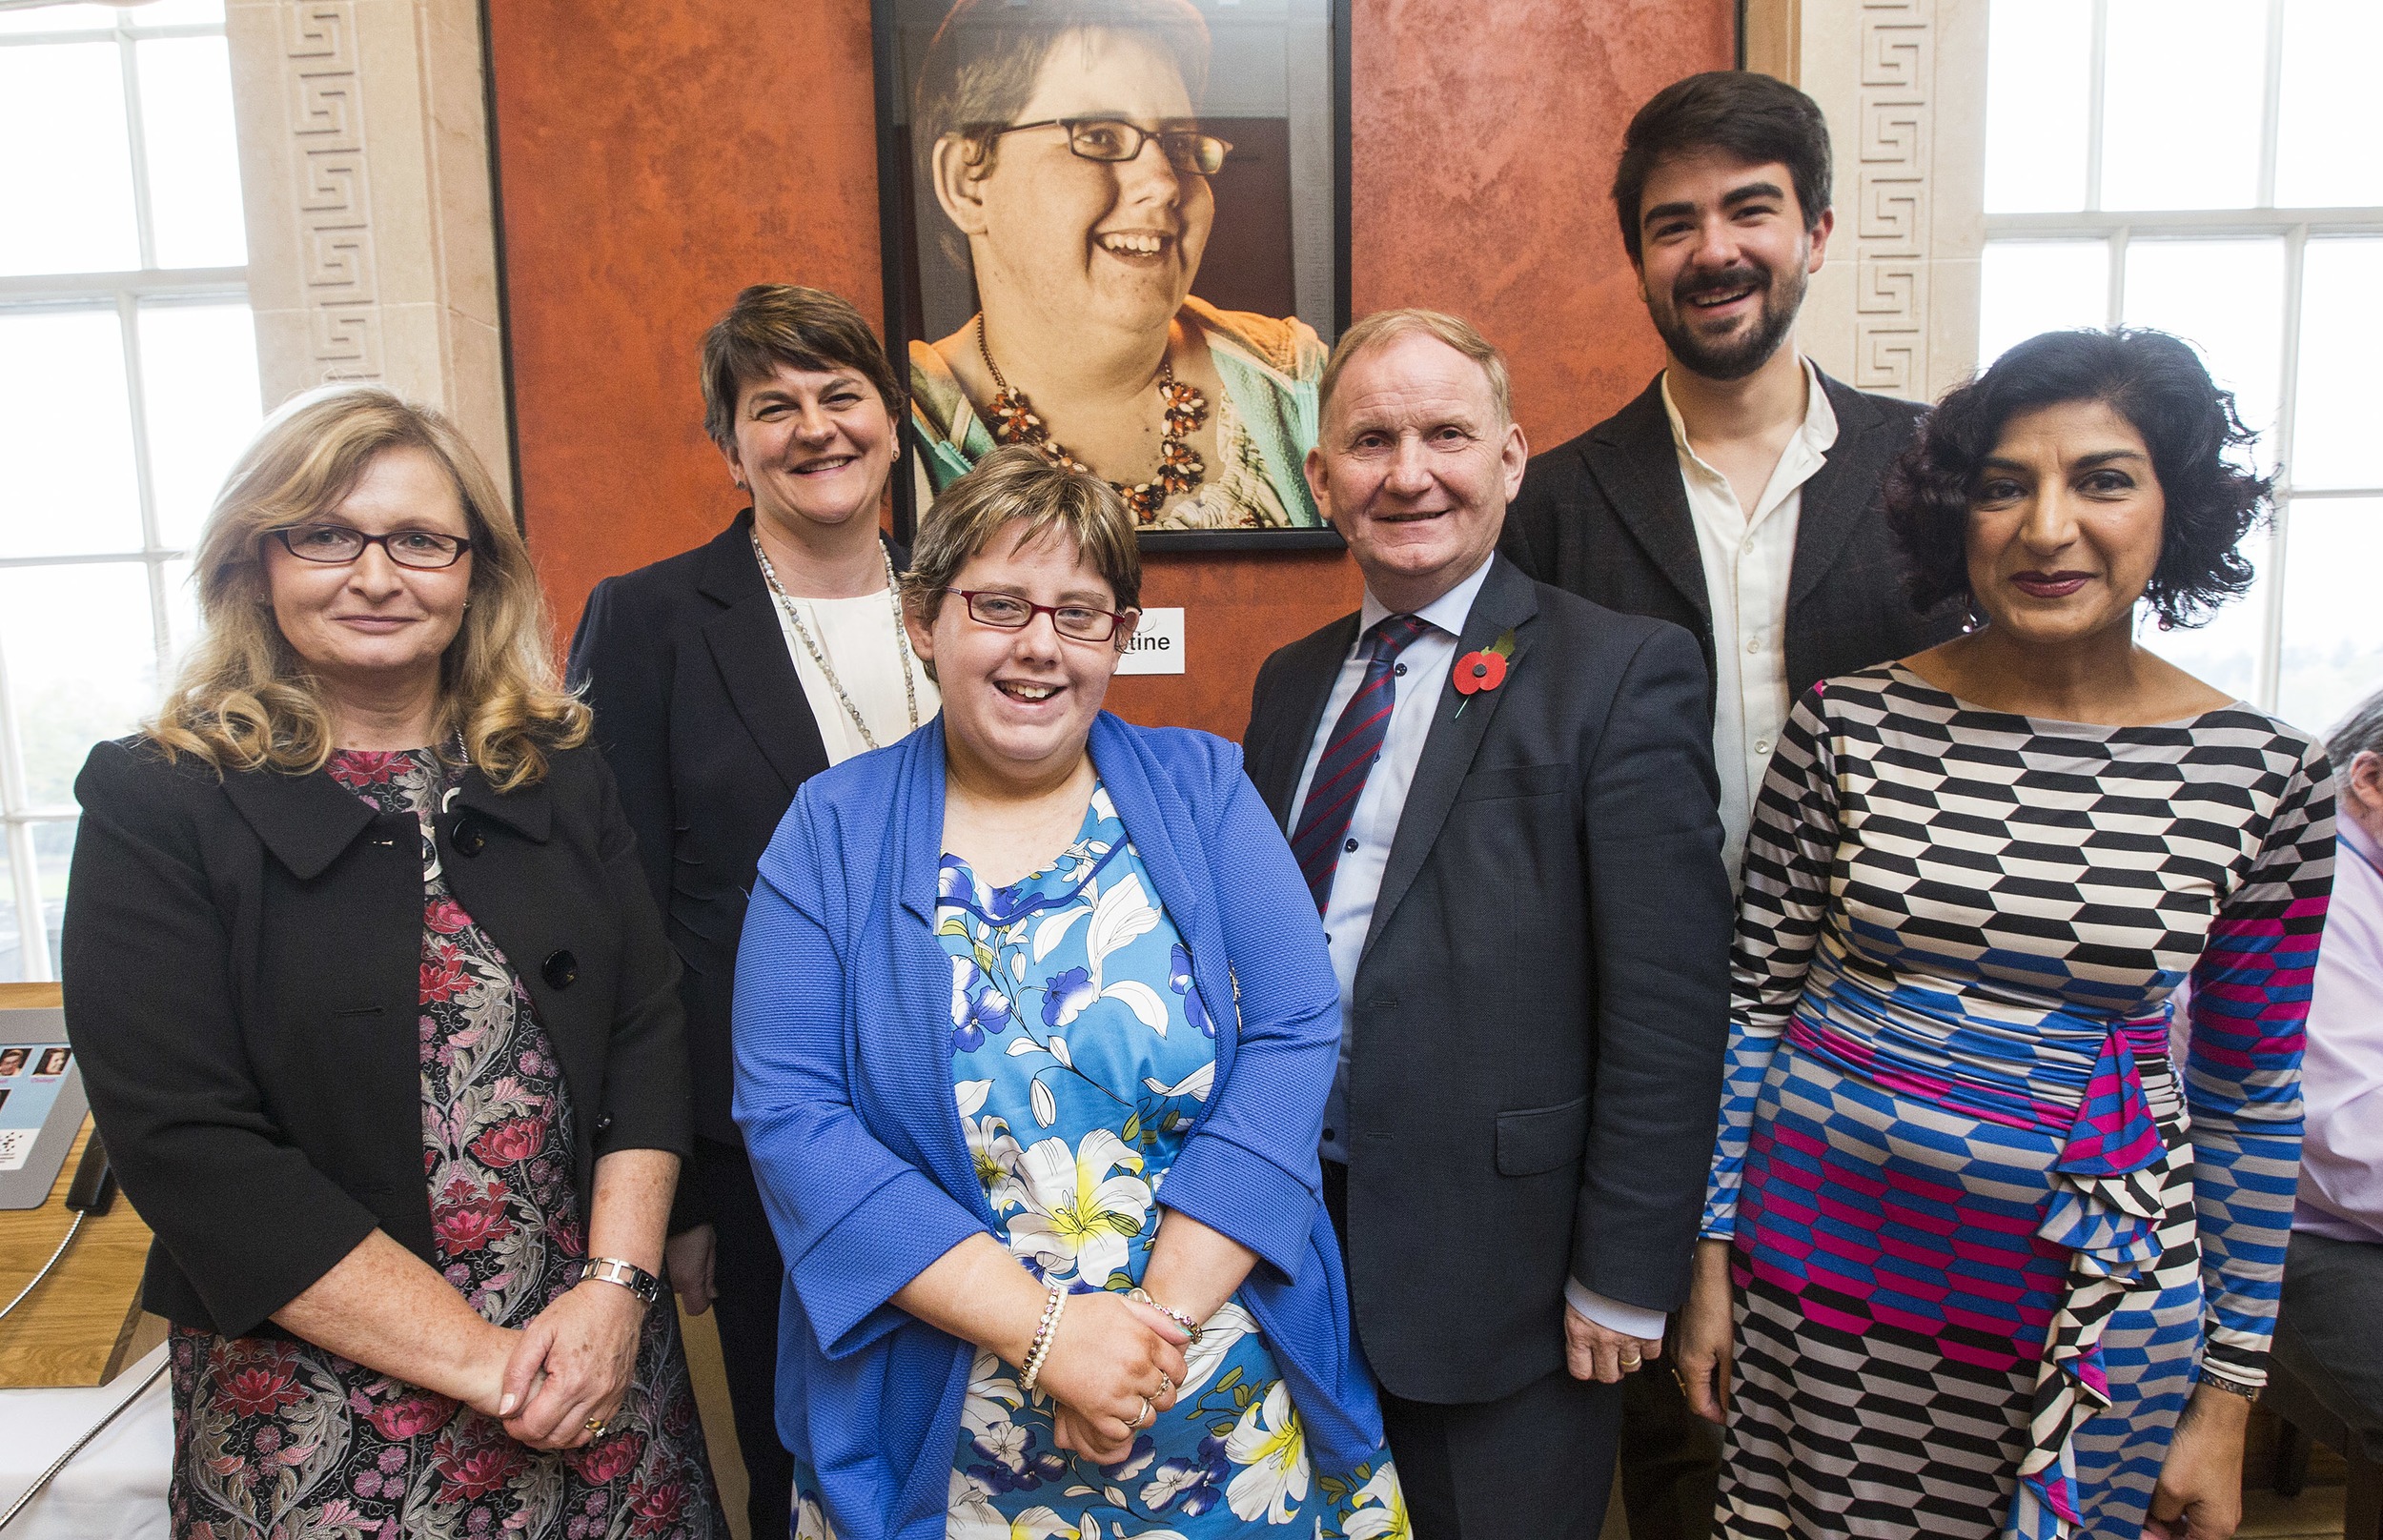 Pictured at the launch of   'My Journey, My Voice' multimedia portraits and stories exhibition to raise awareness of communication disability at Parliament Buildings, Stormont are (L-R) Alison McCullough, Royal College Speech and Language Therapist's; Acting First Minister Arlene Foster MLA; Christine Birney; Lord Morrow MLA, Laurence Gibson, portrait photographer and Kamini Gadhok, CEO of the Royal College of Speech and Language Therapists.